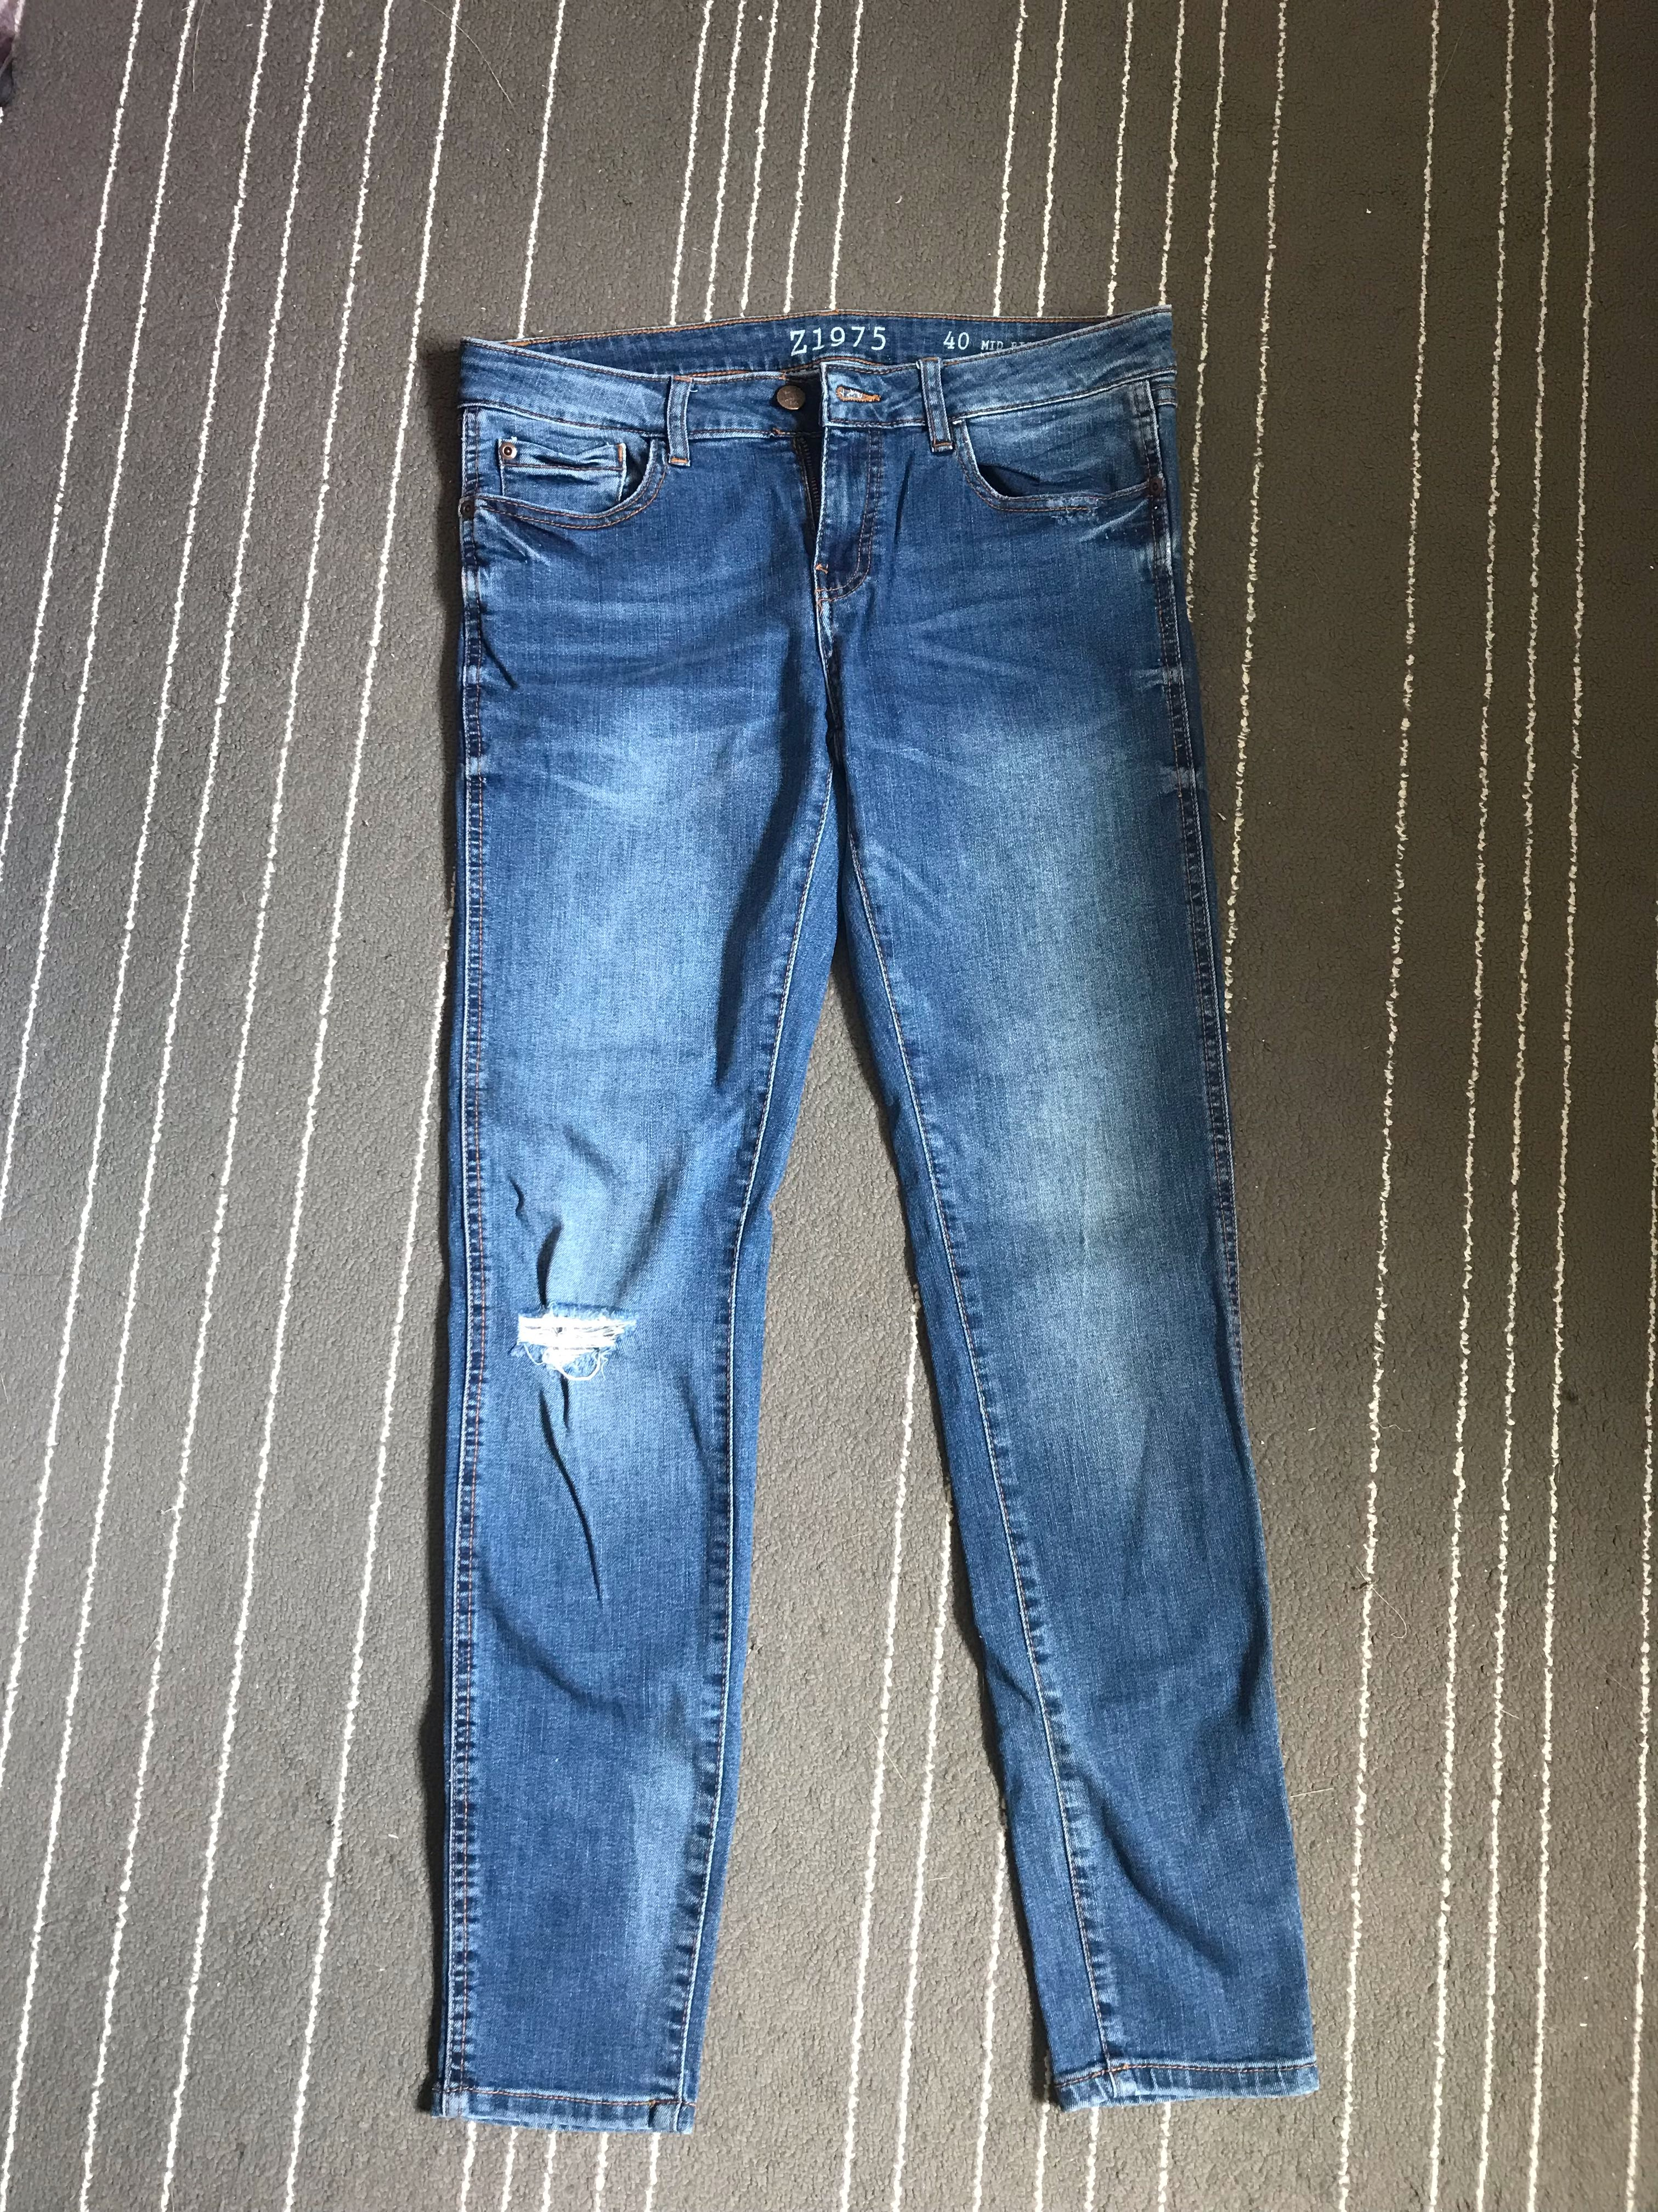 3fef560f Zara skinny jeans, Women's Fashion, Clothes, Bottoms on Carousell